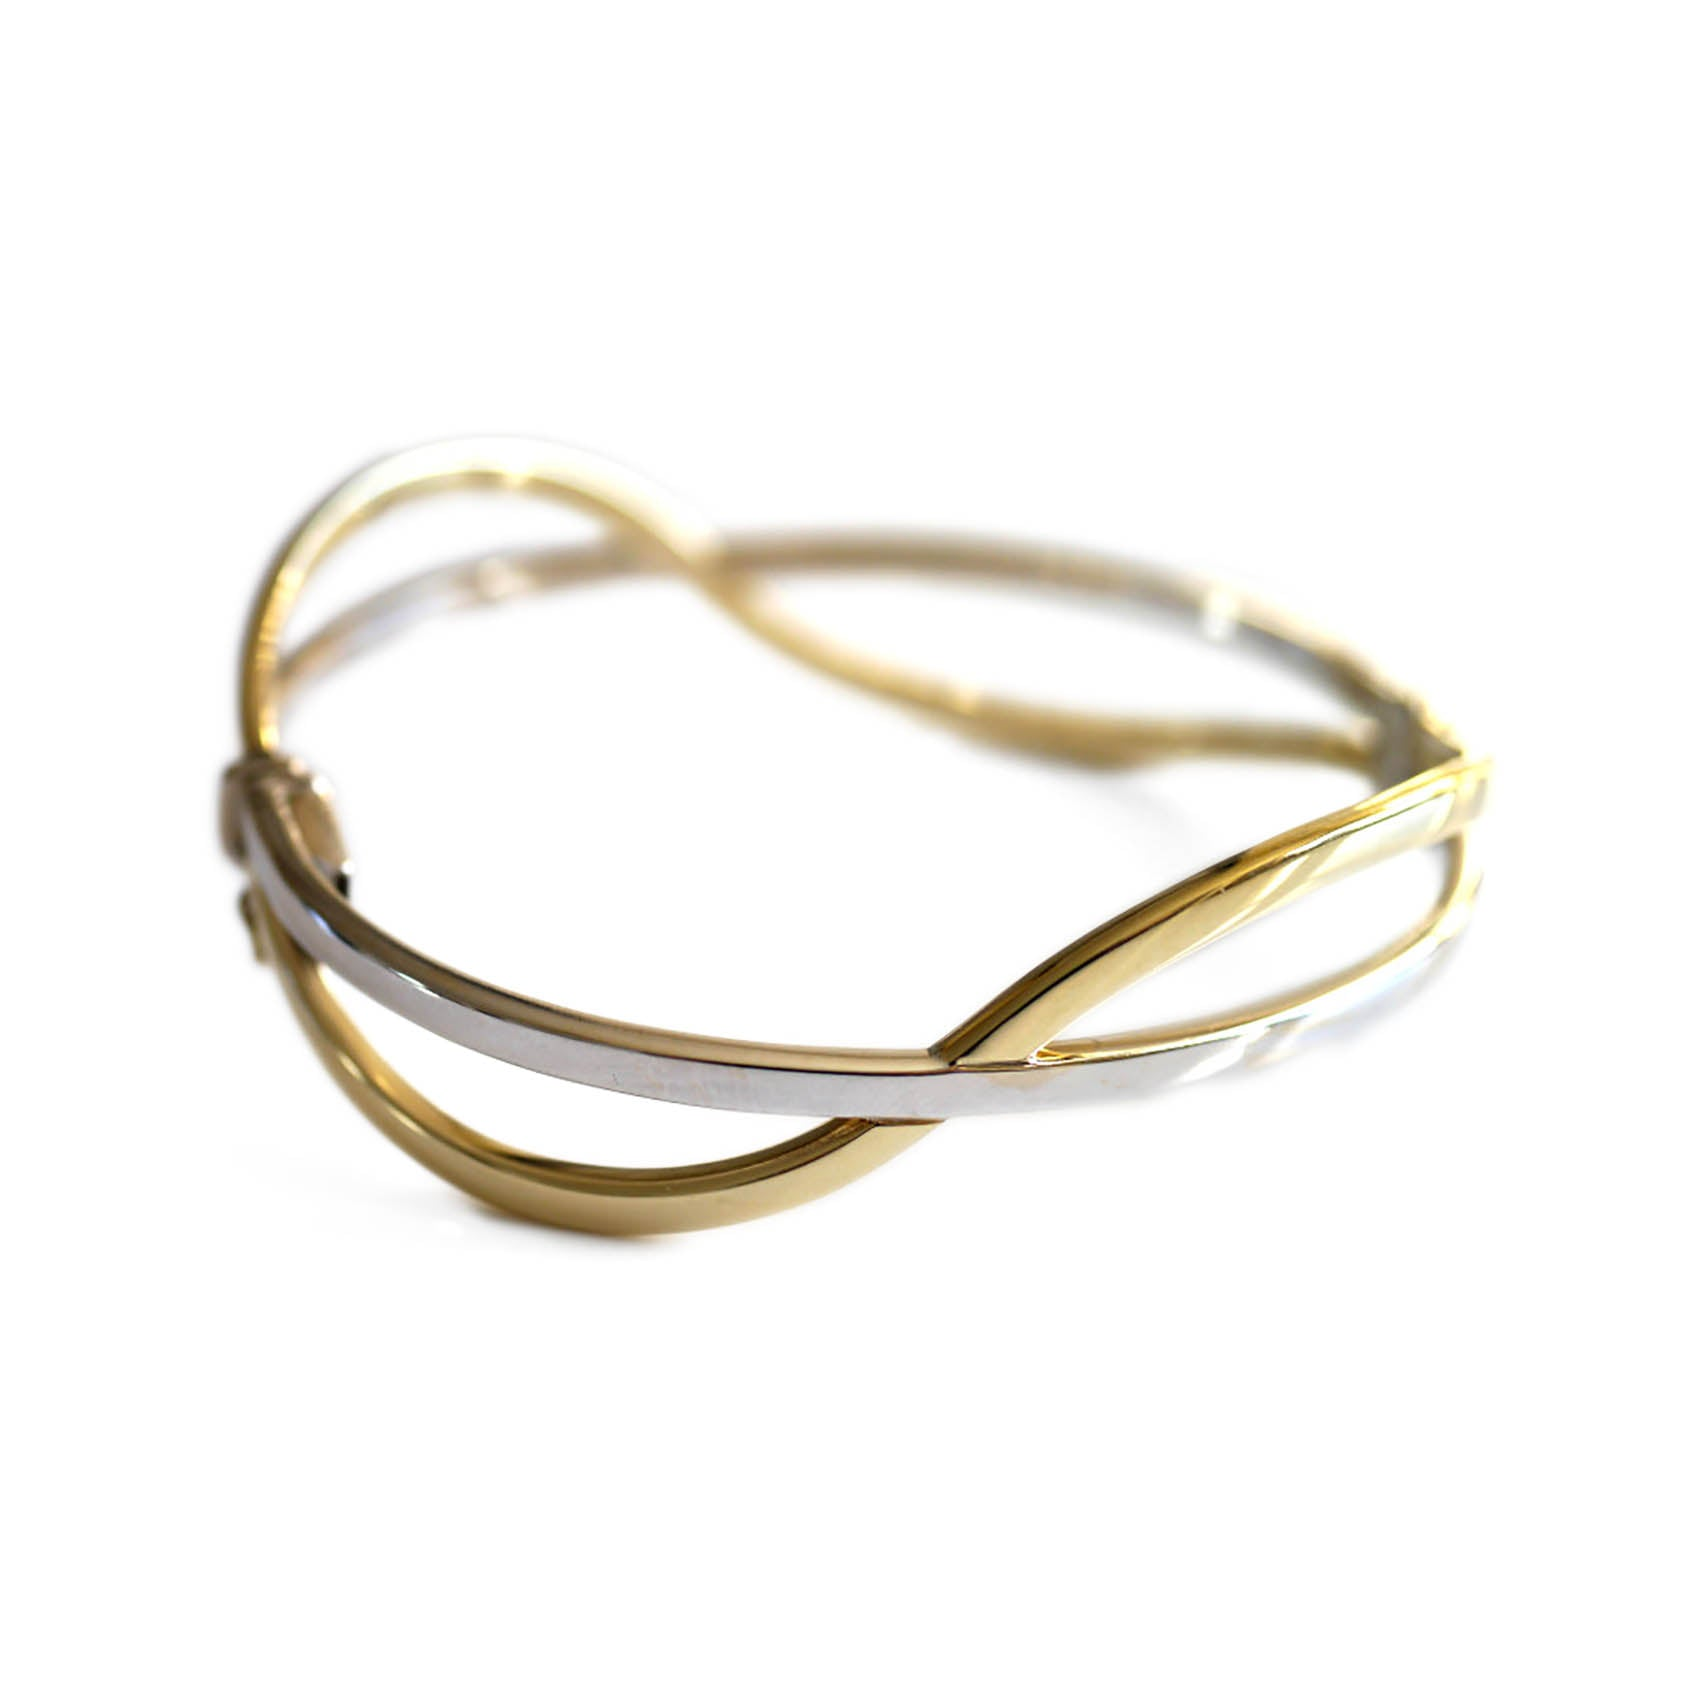 Vintage Yellow and White Vintage Gold Two Tone Bangle